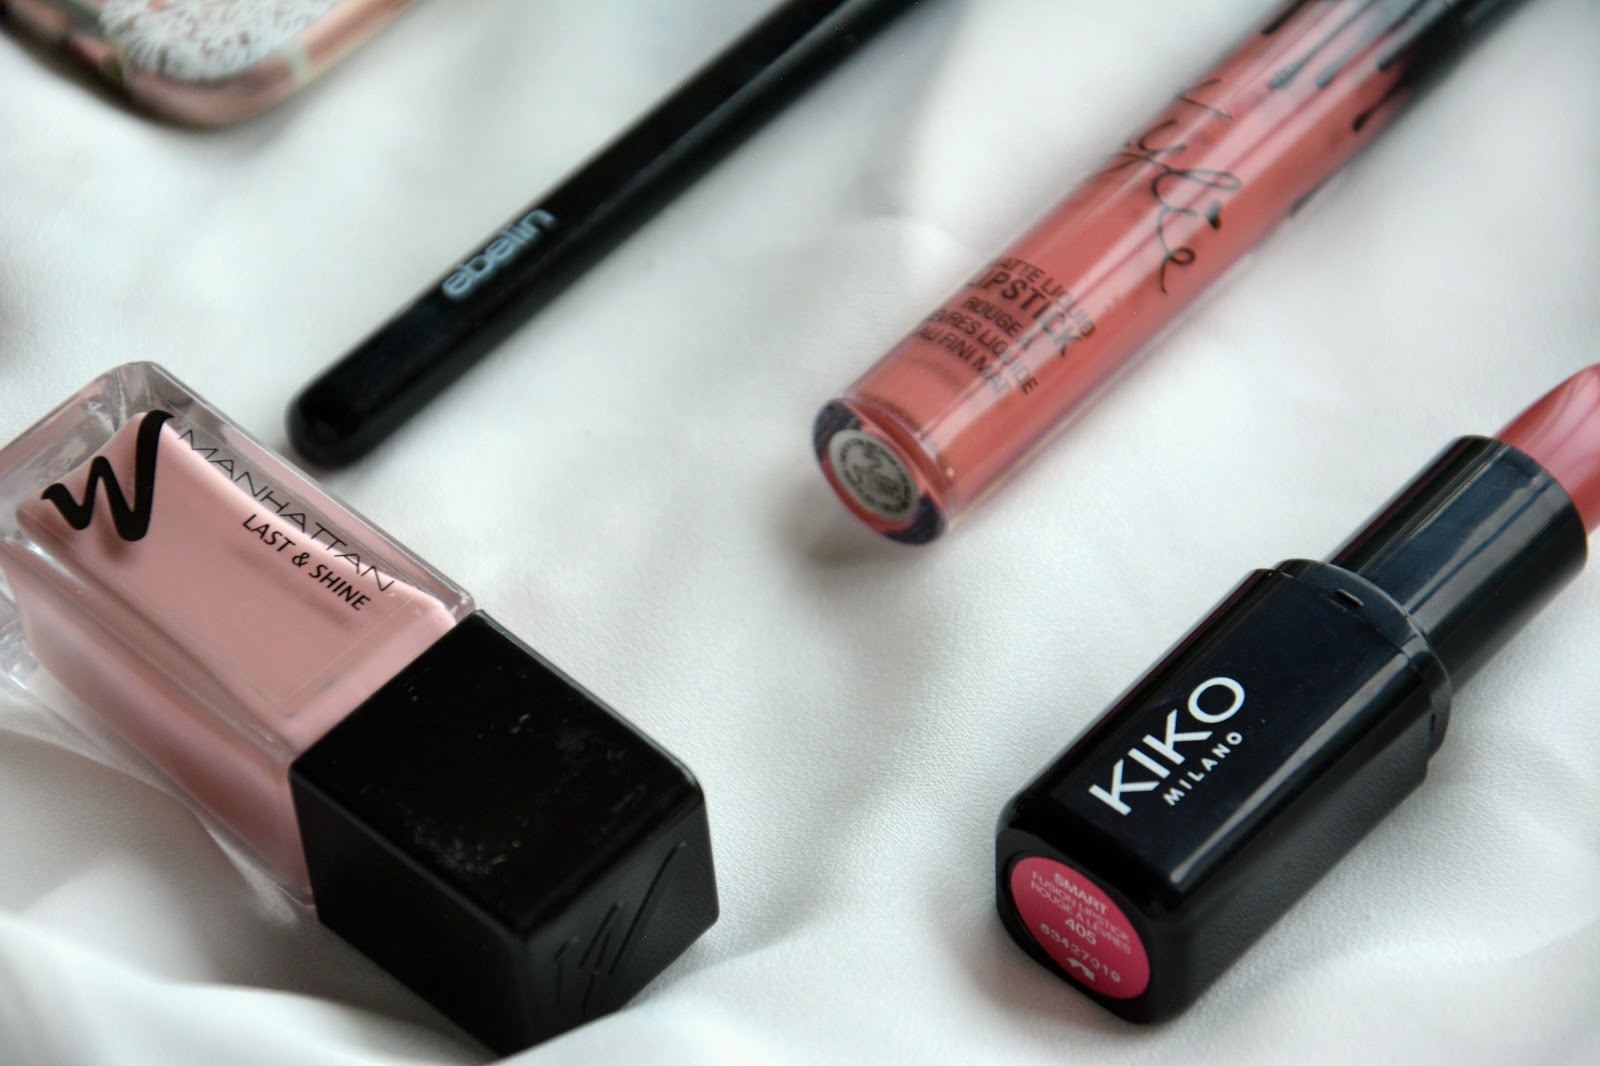 Ebelin Blending Brush, Kylie Lip Kit Candy K, Manhattan Last & Shine Nail Polish, Kiko Lipstick